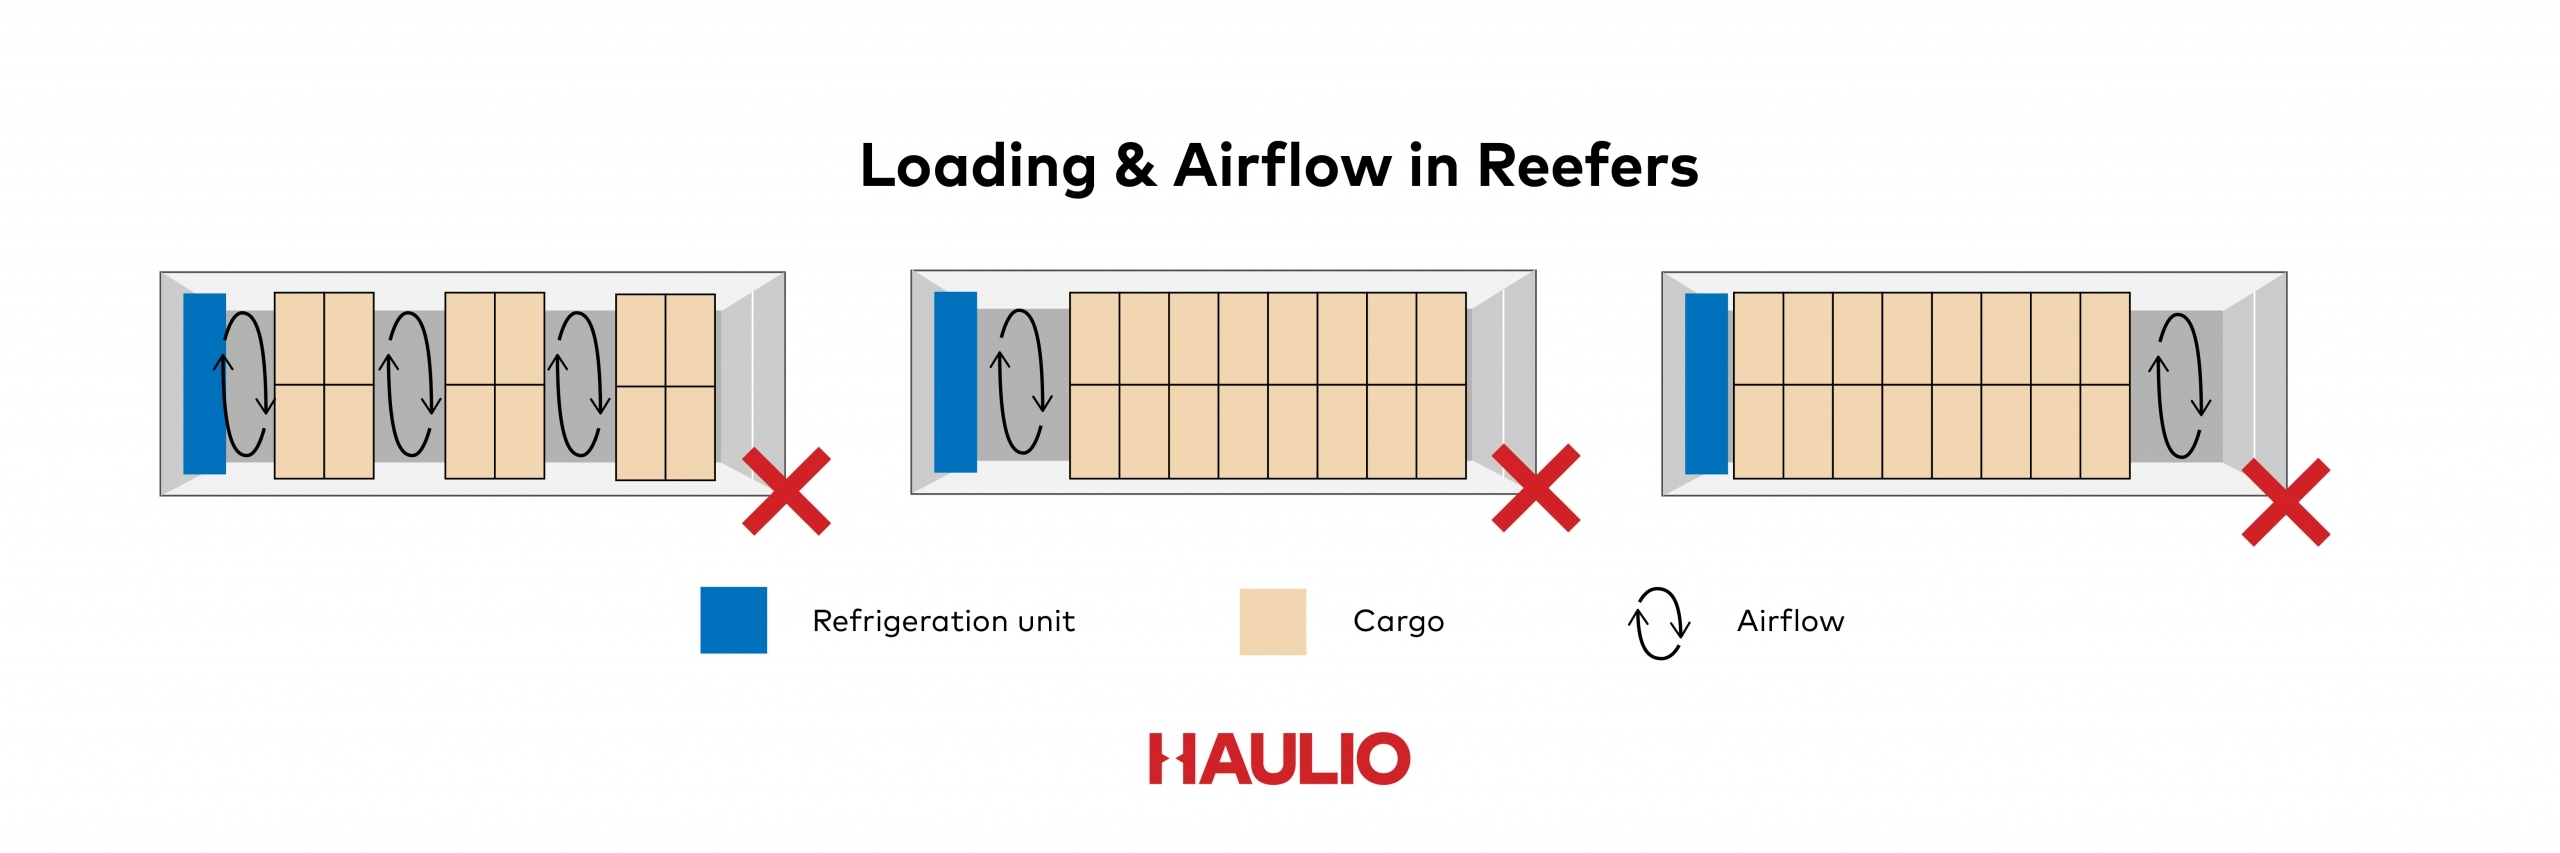 Reefer Loading & Airflow